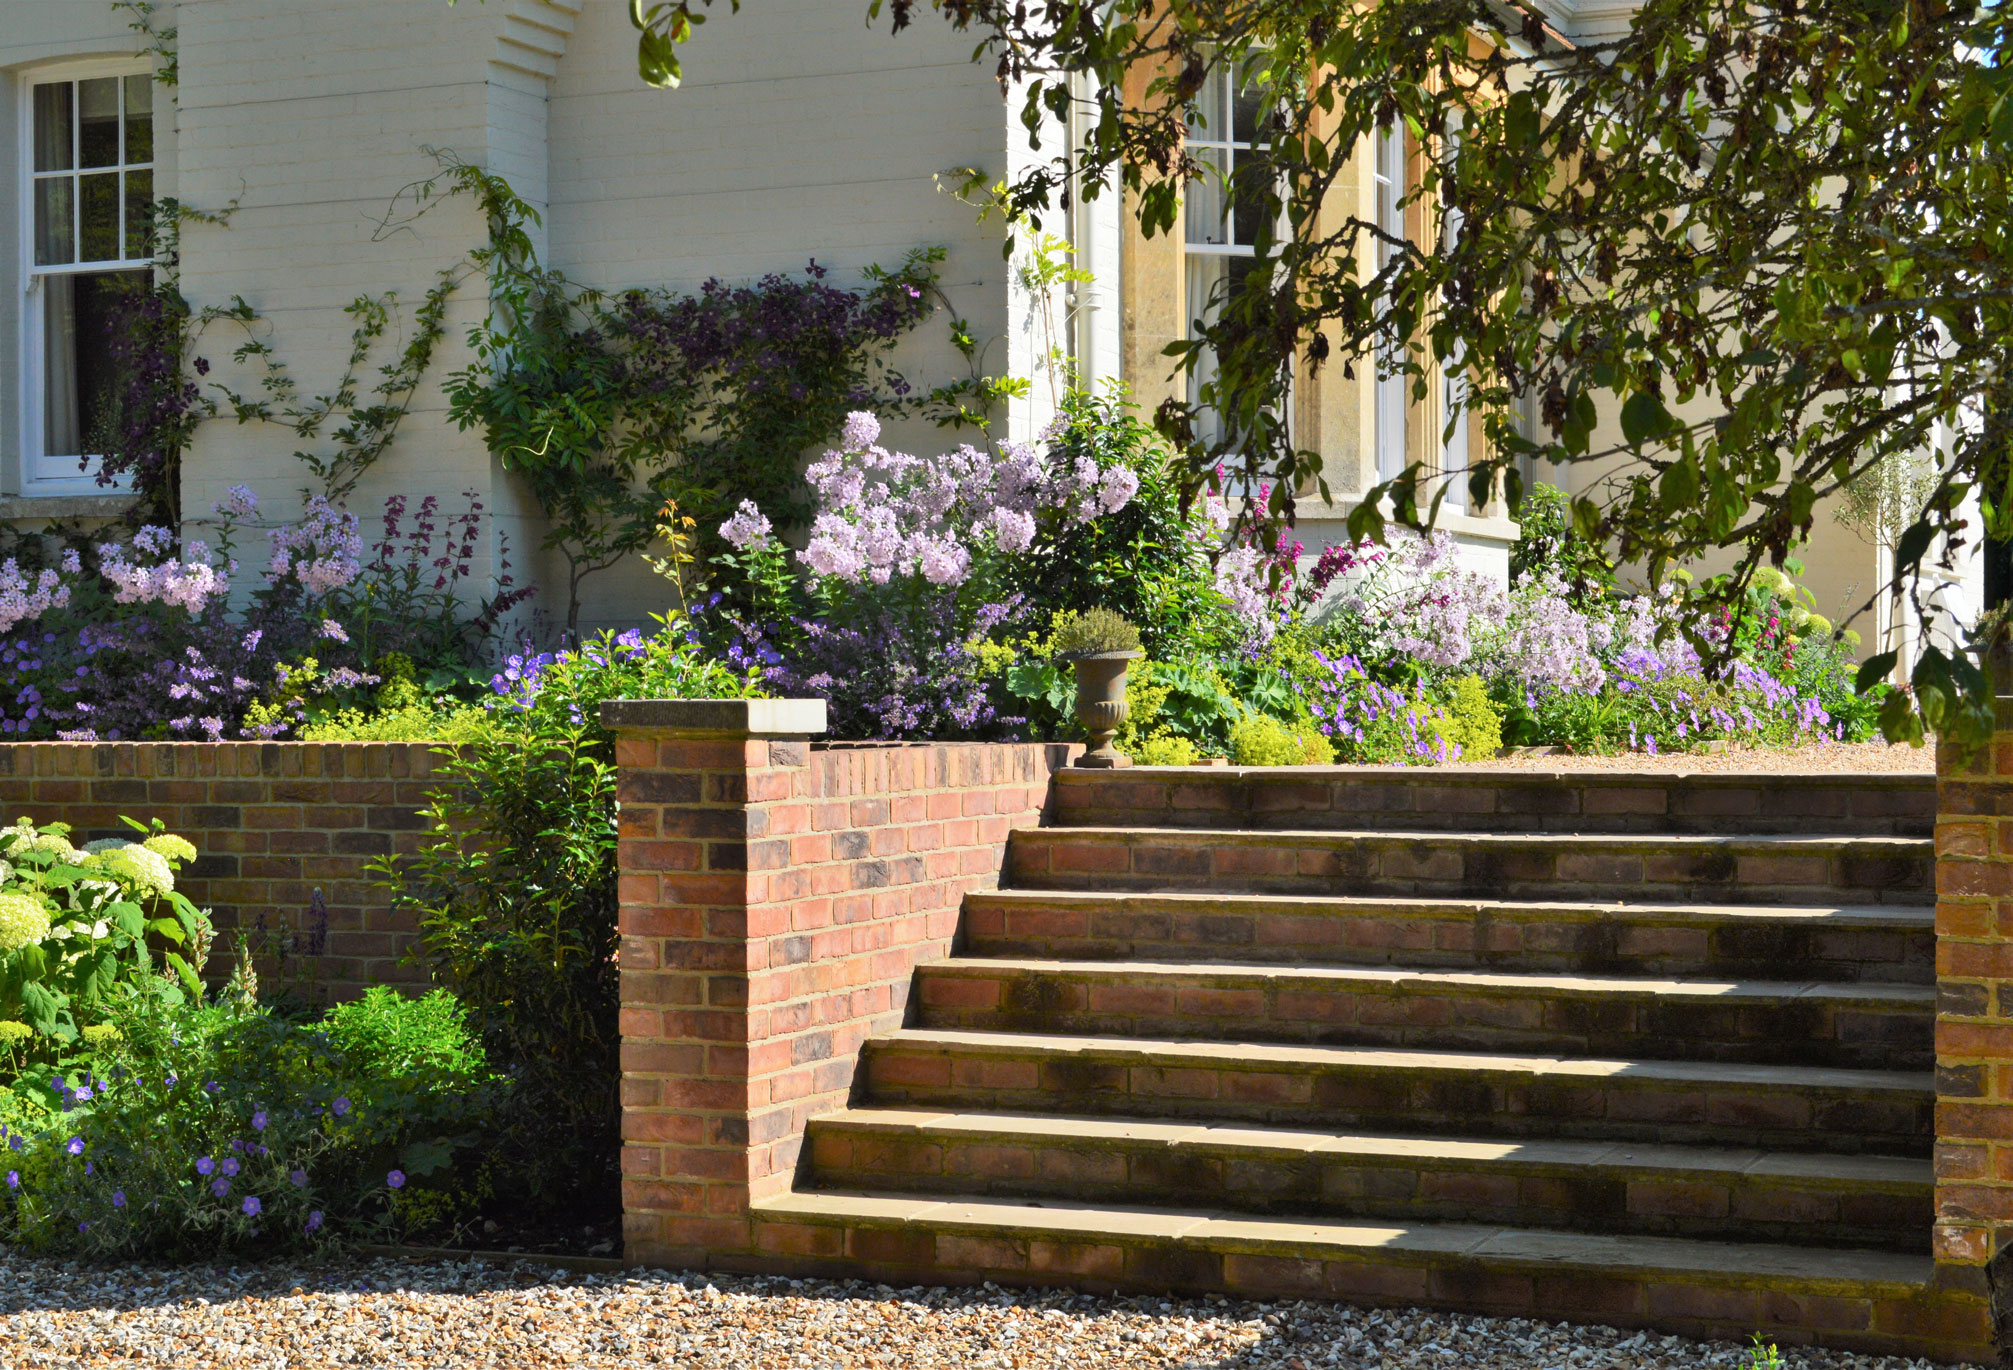 Landscape design with brick and stone steps